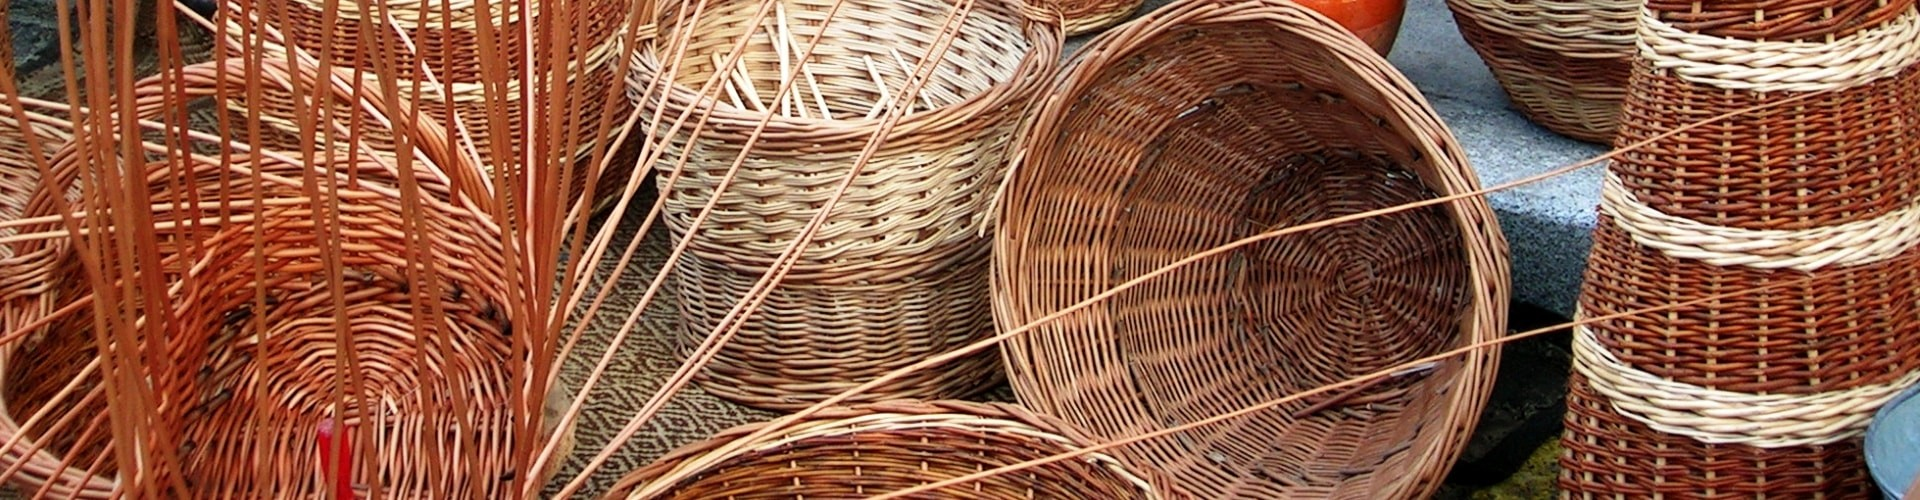 Madeira Wicker Work